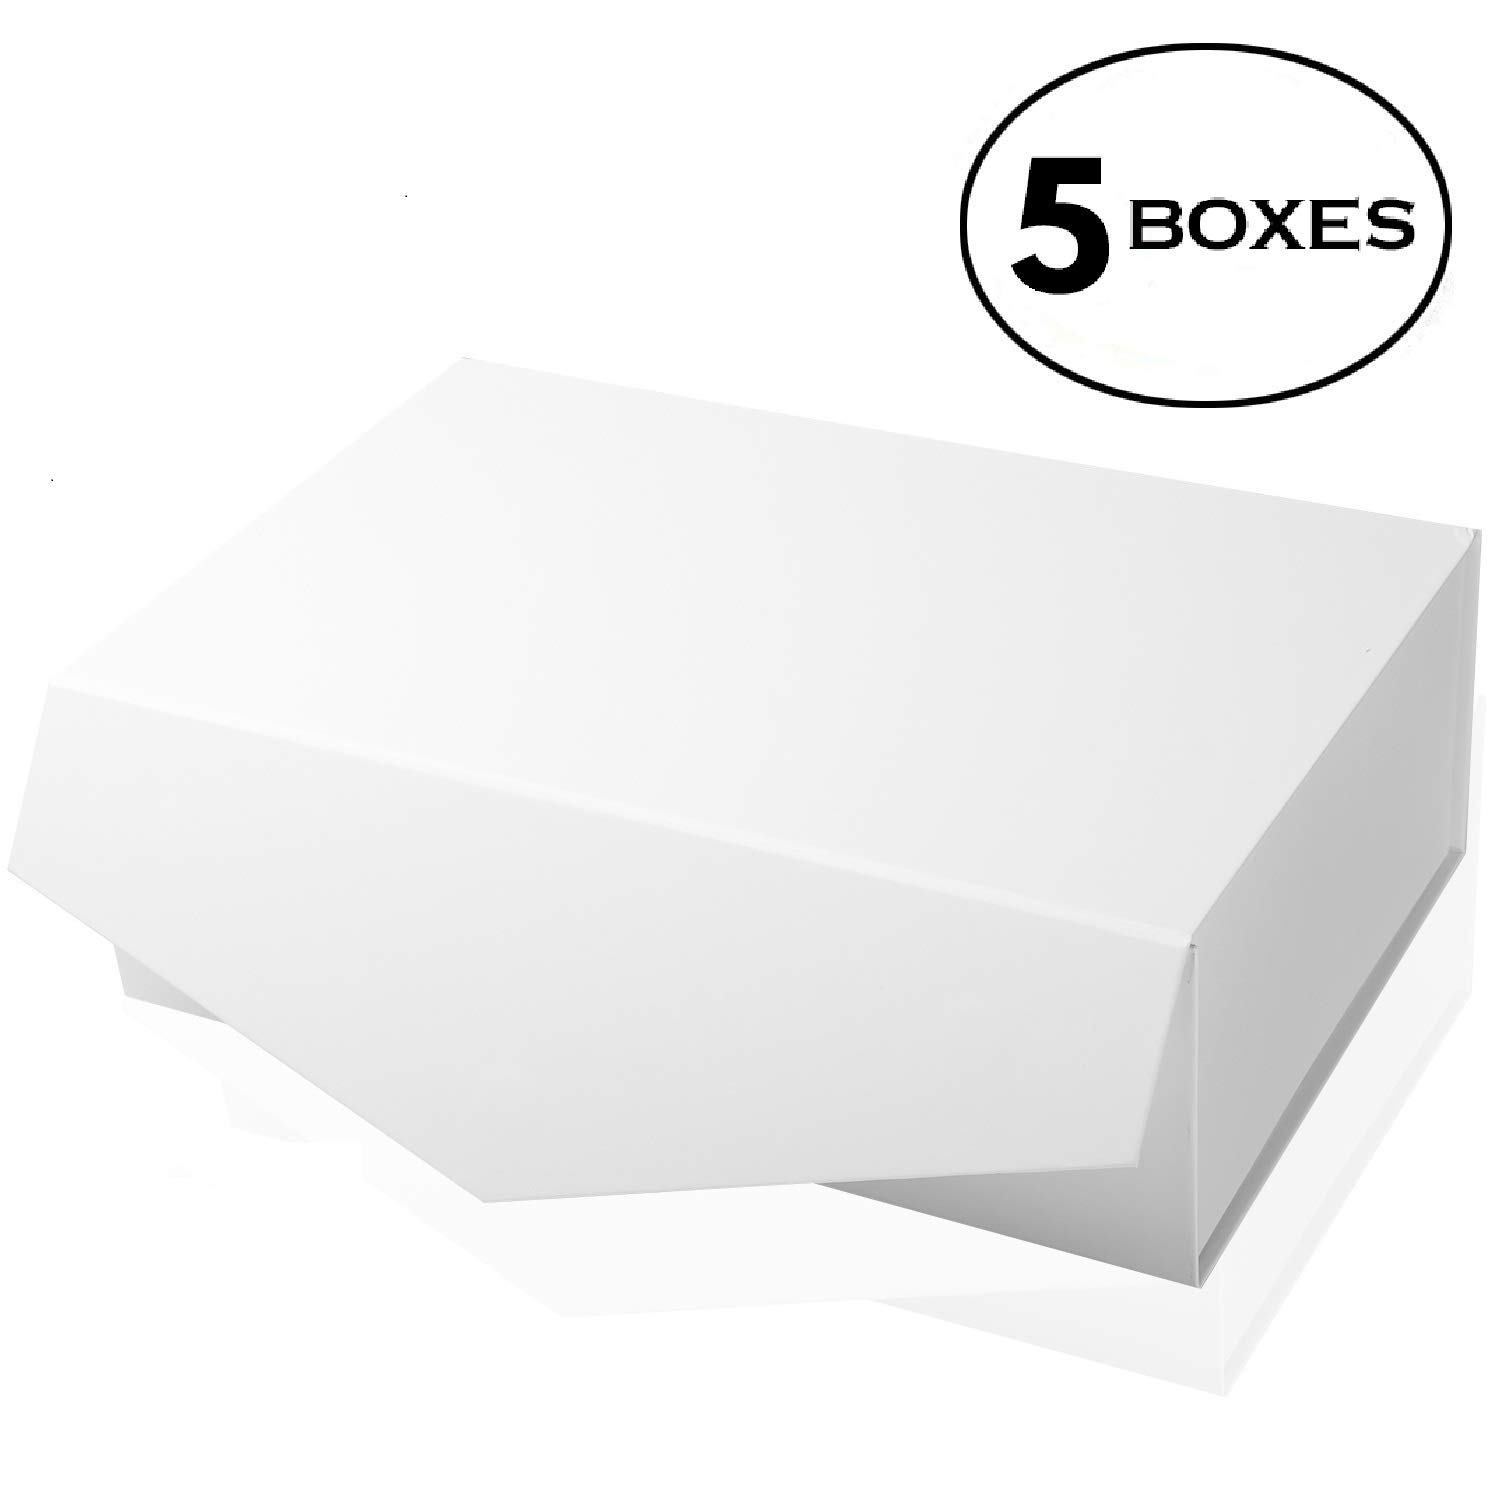 [Yeden] Large Gift Box | 5 Luxury Boxes | Collapsible Magnetic Closure | Durable Storage Box (14'' x 9'' x 4.5'') by Yeden